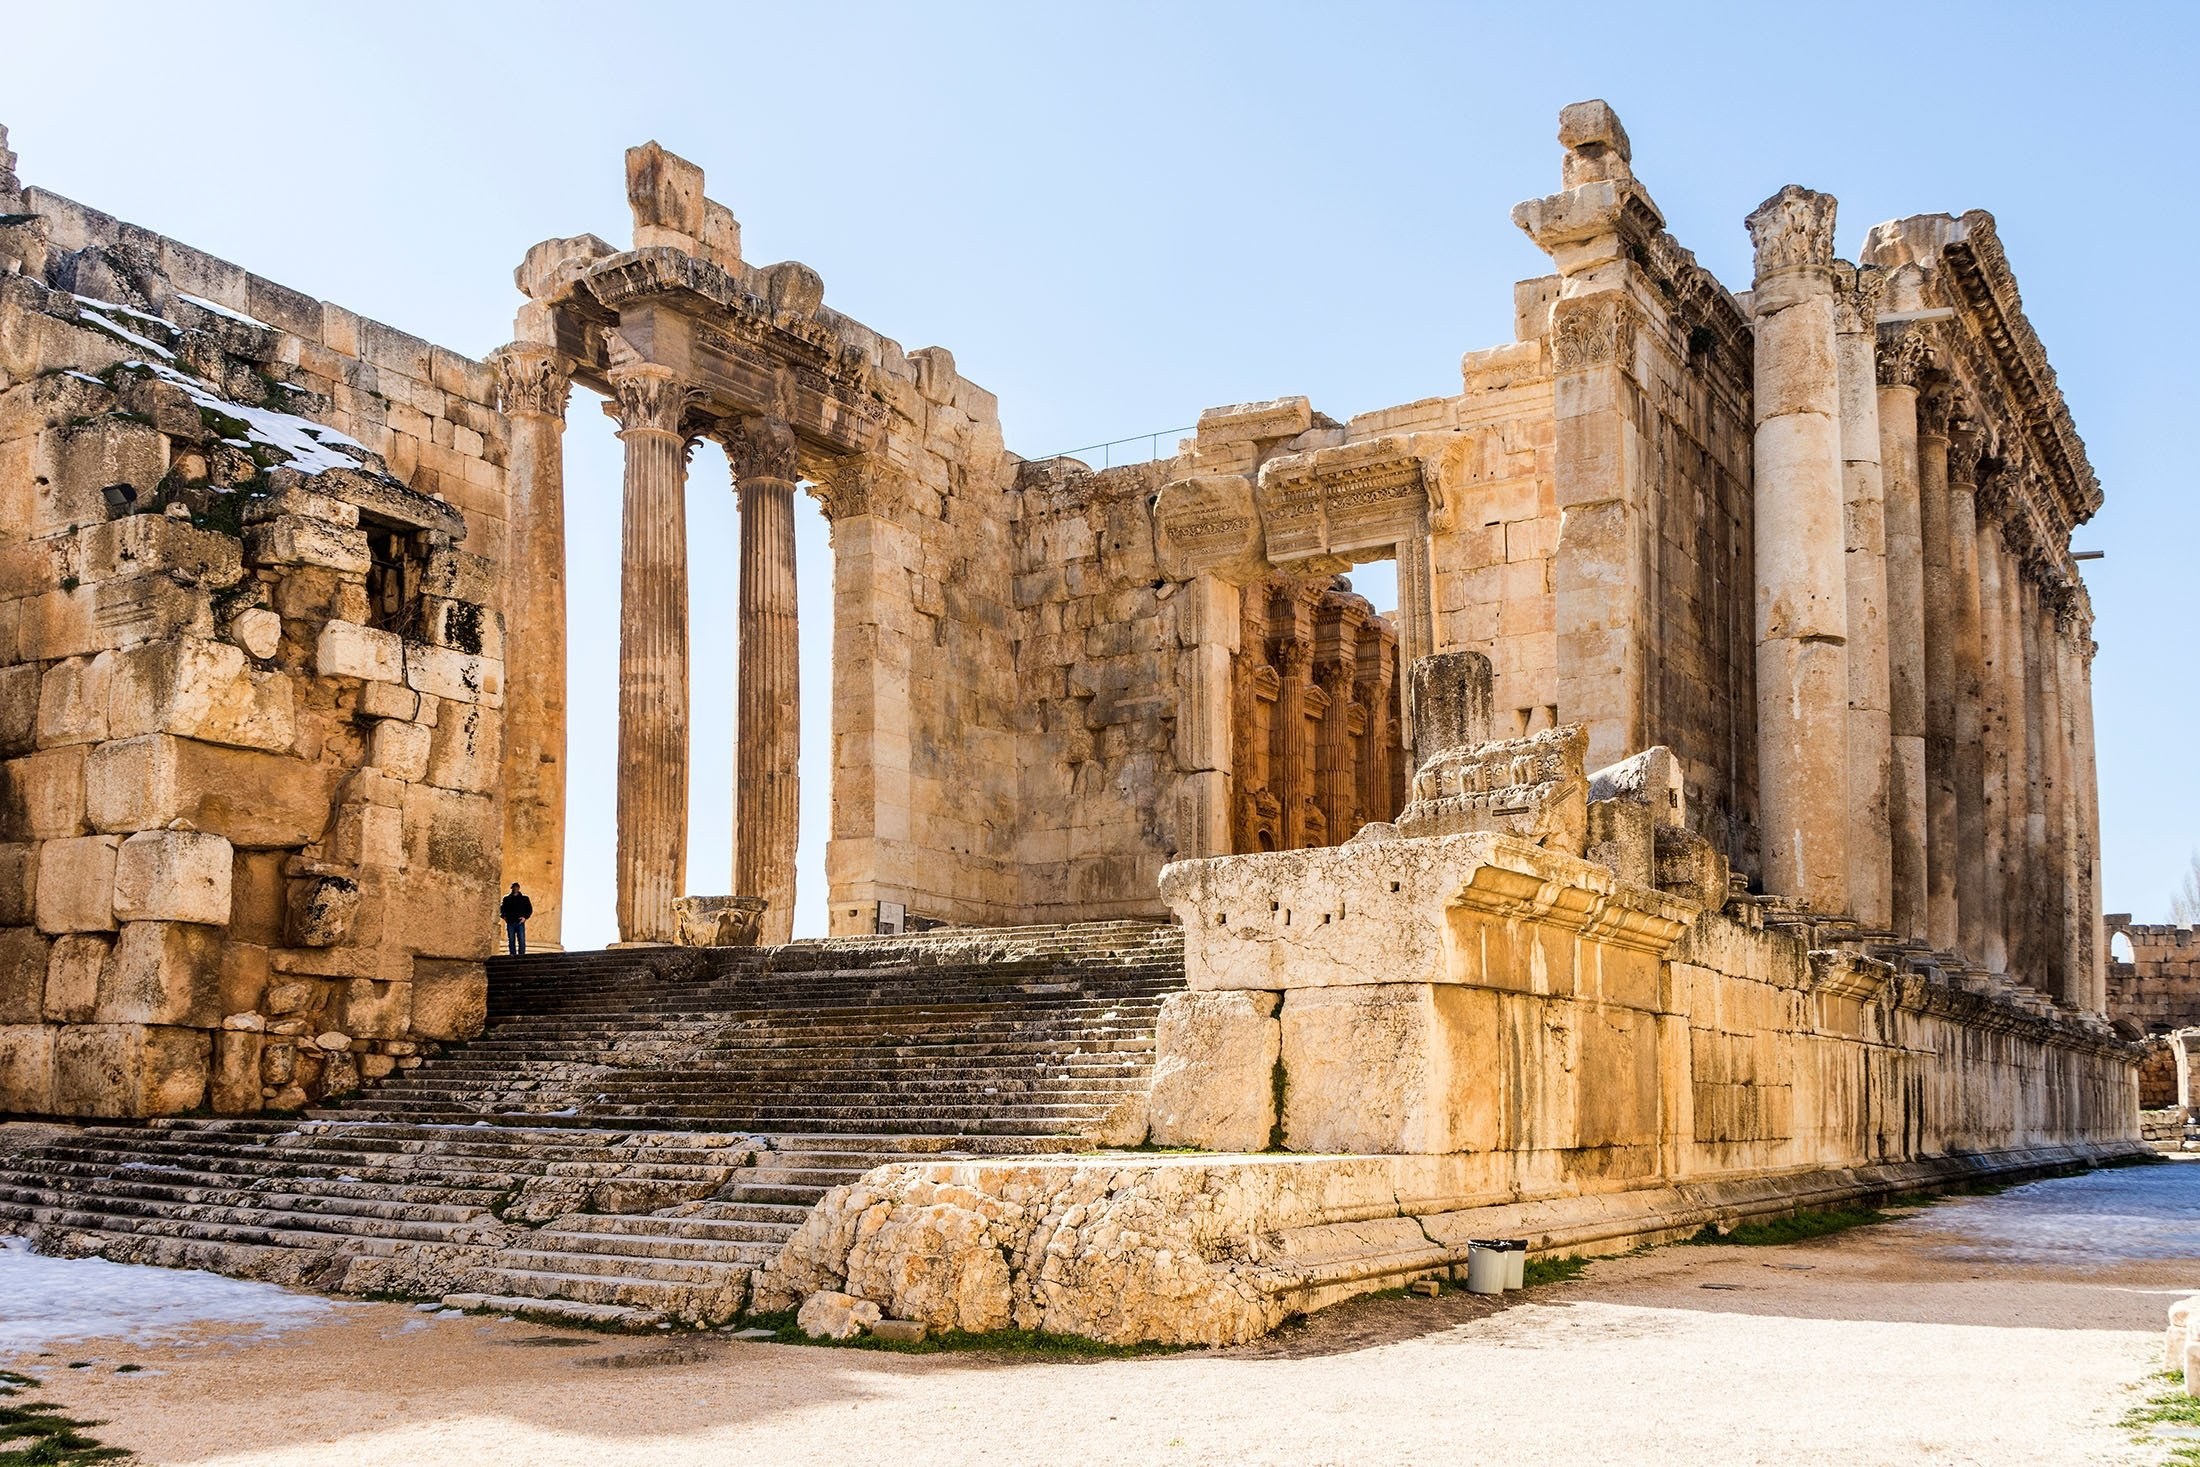 The ruins of the Temple of Bacchus, the Roman god of wine, can be seen in Roman Heliopolis, Baalbek, Lebanon, Jan. 23, 2019. (Shutterstock Photo)